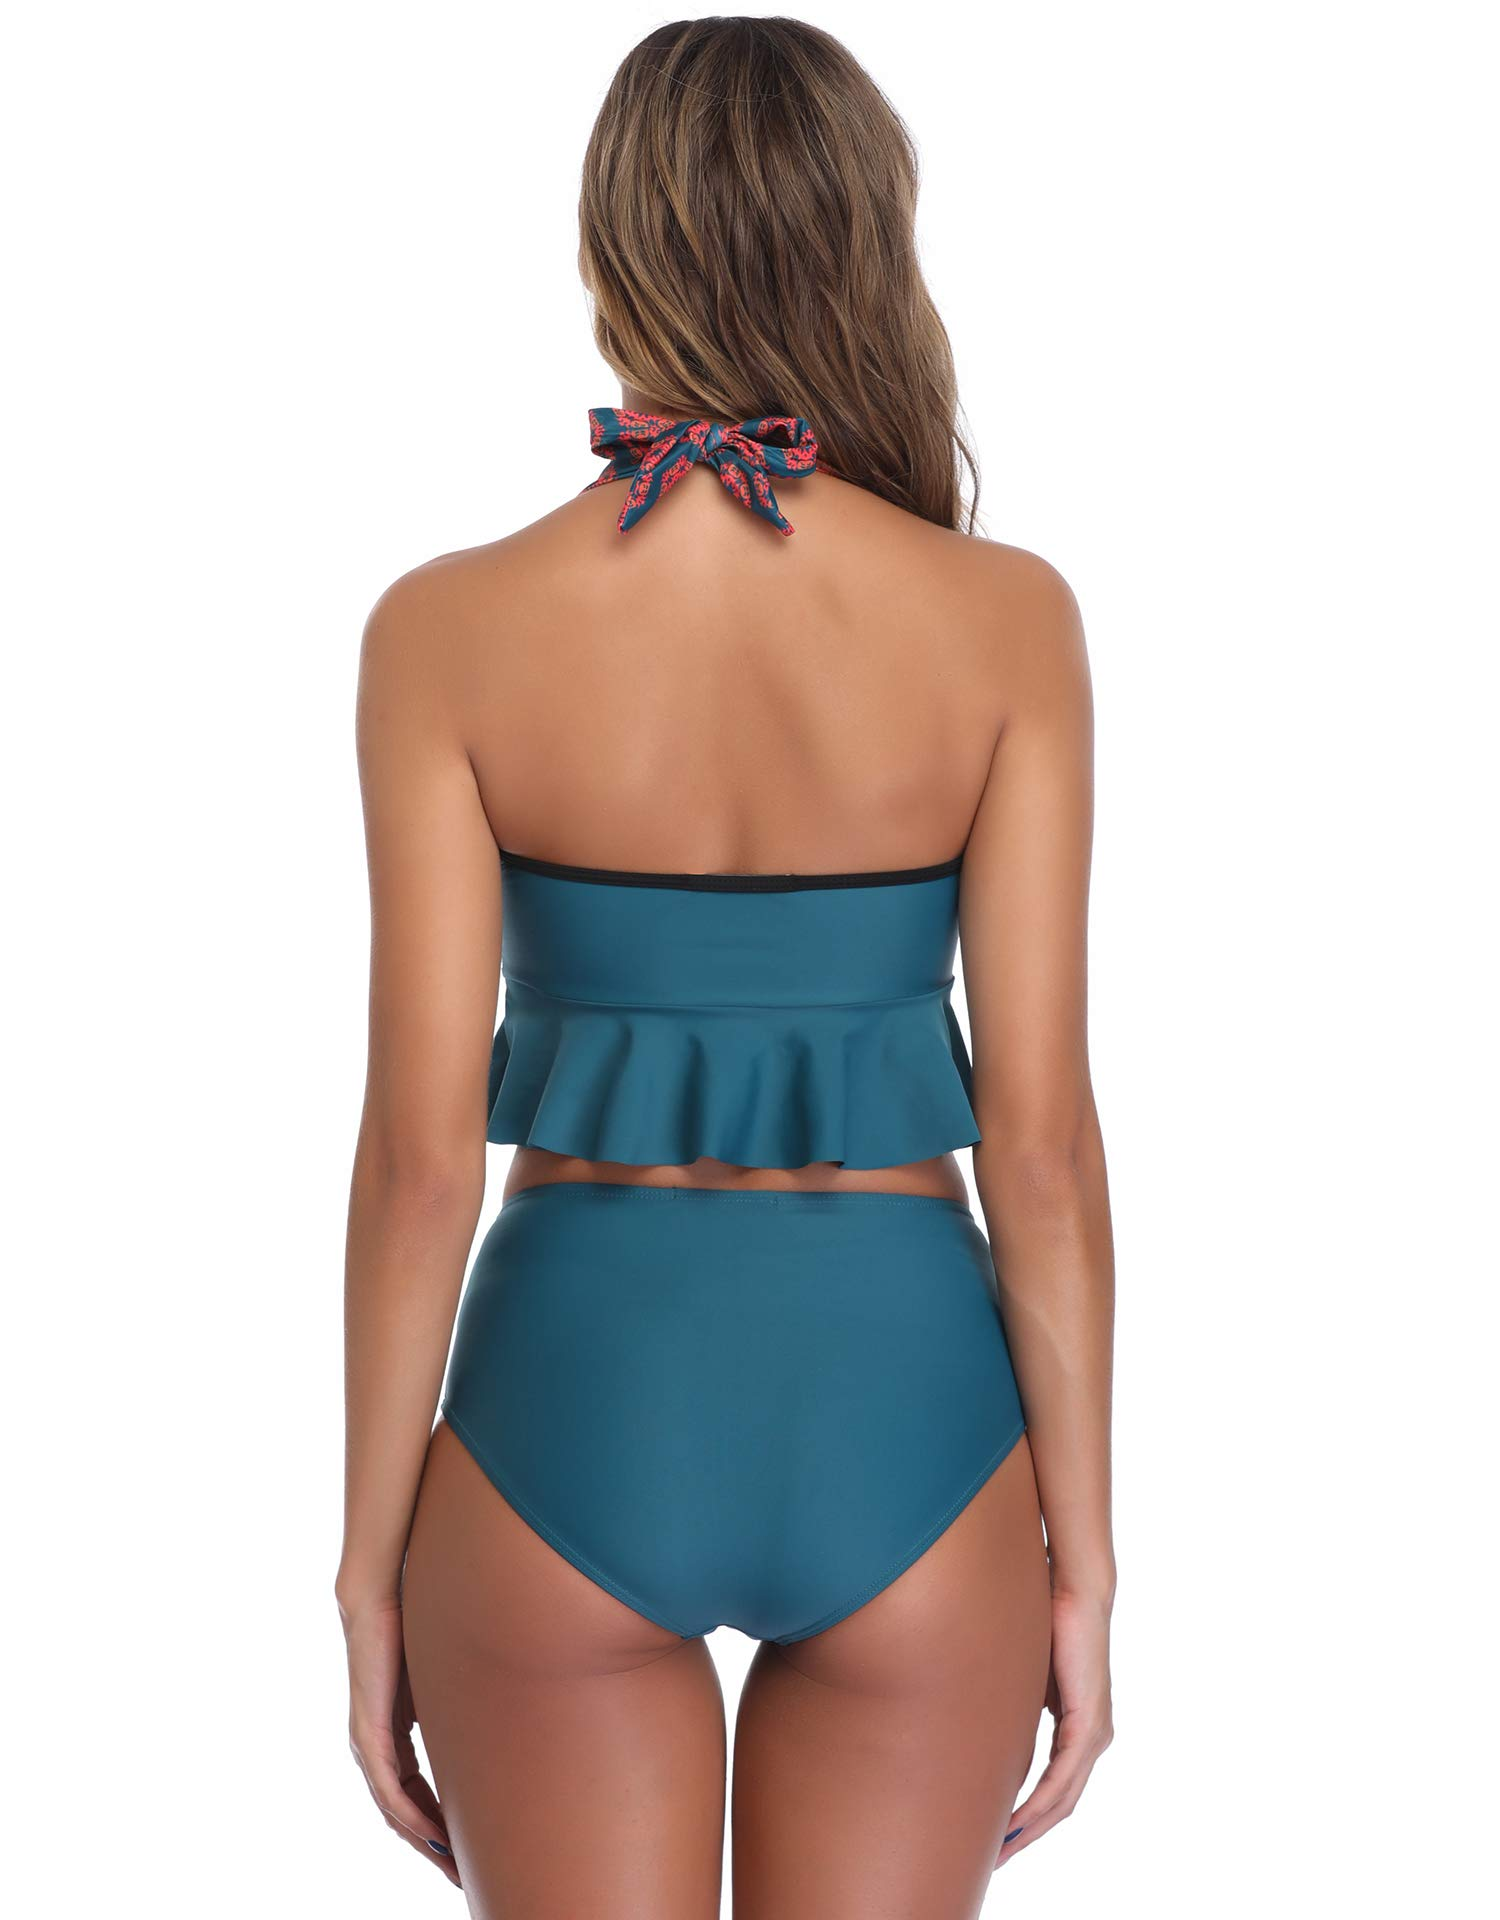 MarinaVida Women's Swimsuits Two Piece Green